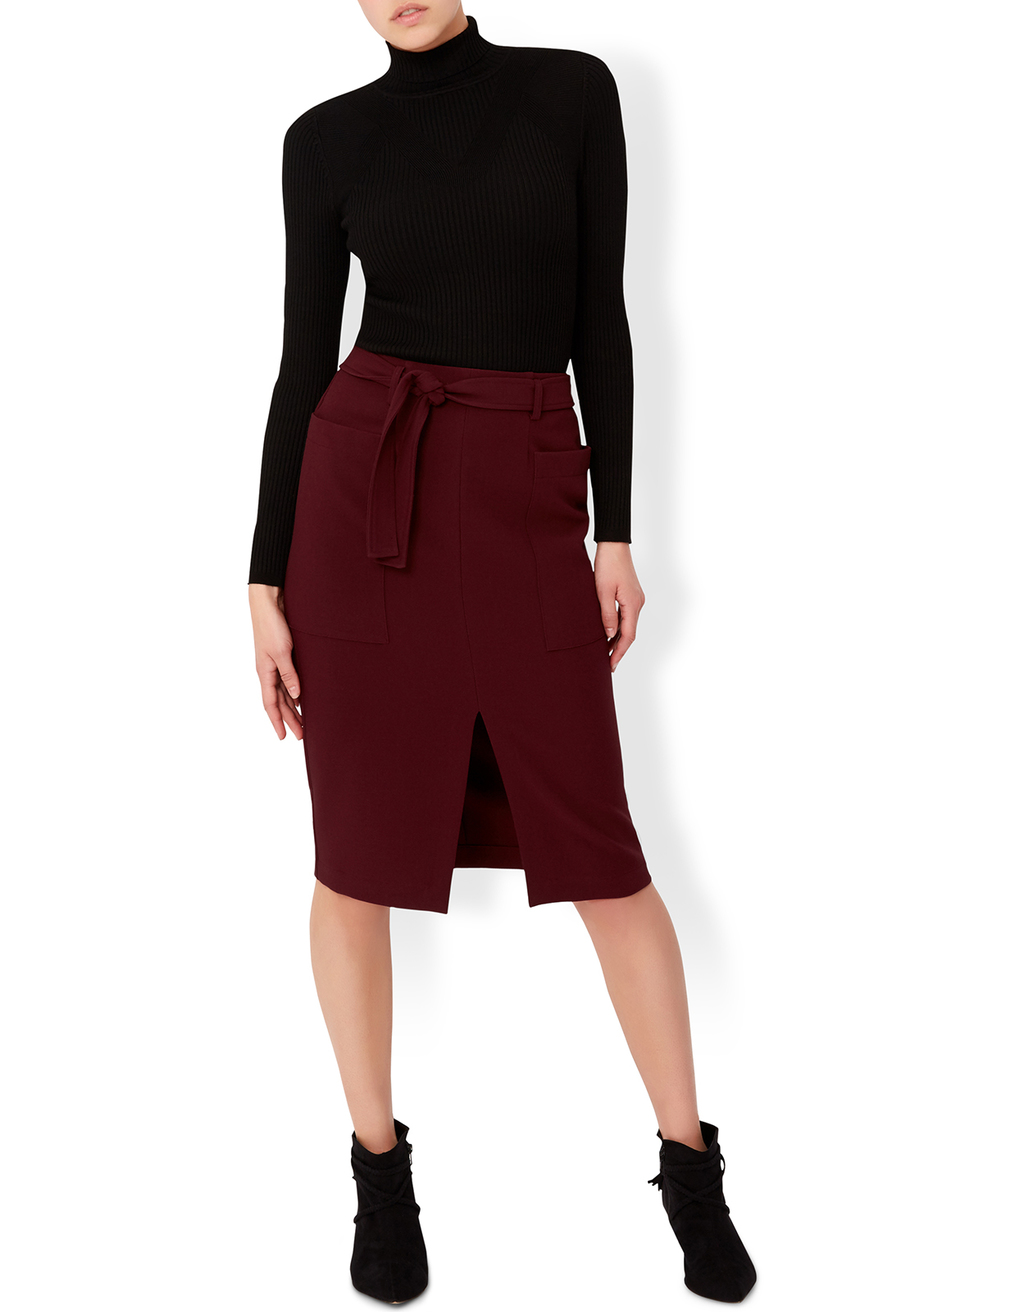 Eliza Skirt - length: below the knee; pattern: plain; style: pencil; fit: tailored/fitted; waist detail: belted waist/tie at waist/drawstring; waist: mid/regular rise; predominant colour: burgundy; occasions: evening; fibres: polyester/polyamide - stretch; texture group: crepes; pattern type: fabric; season: a/w 2016; wardrobe: event